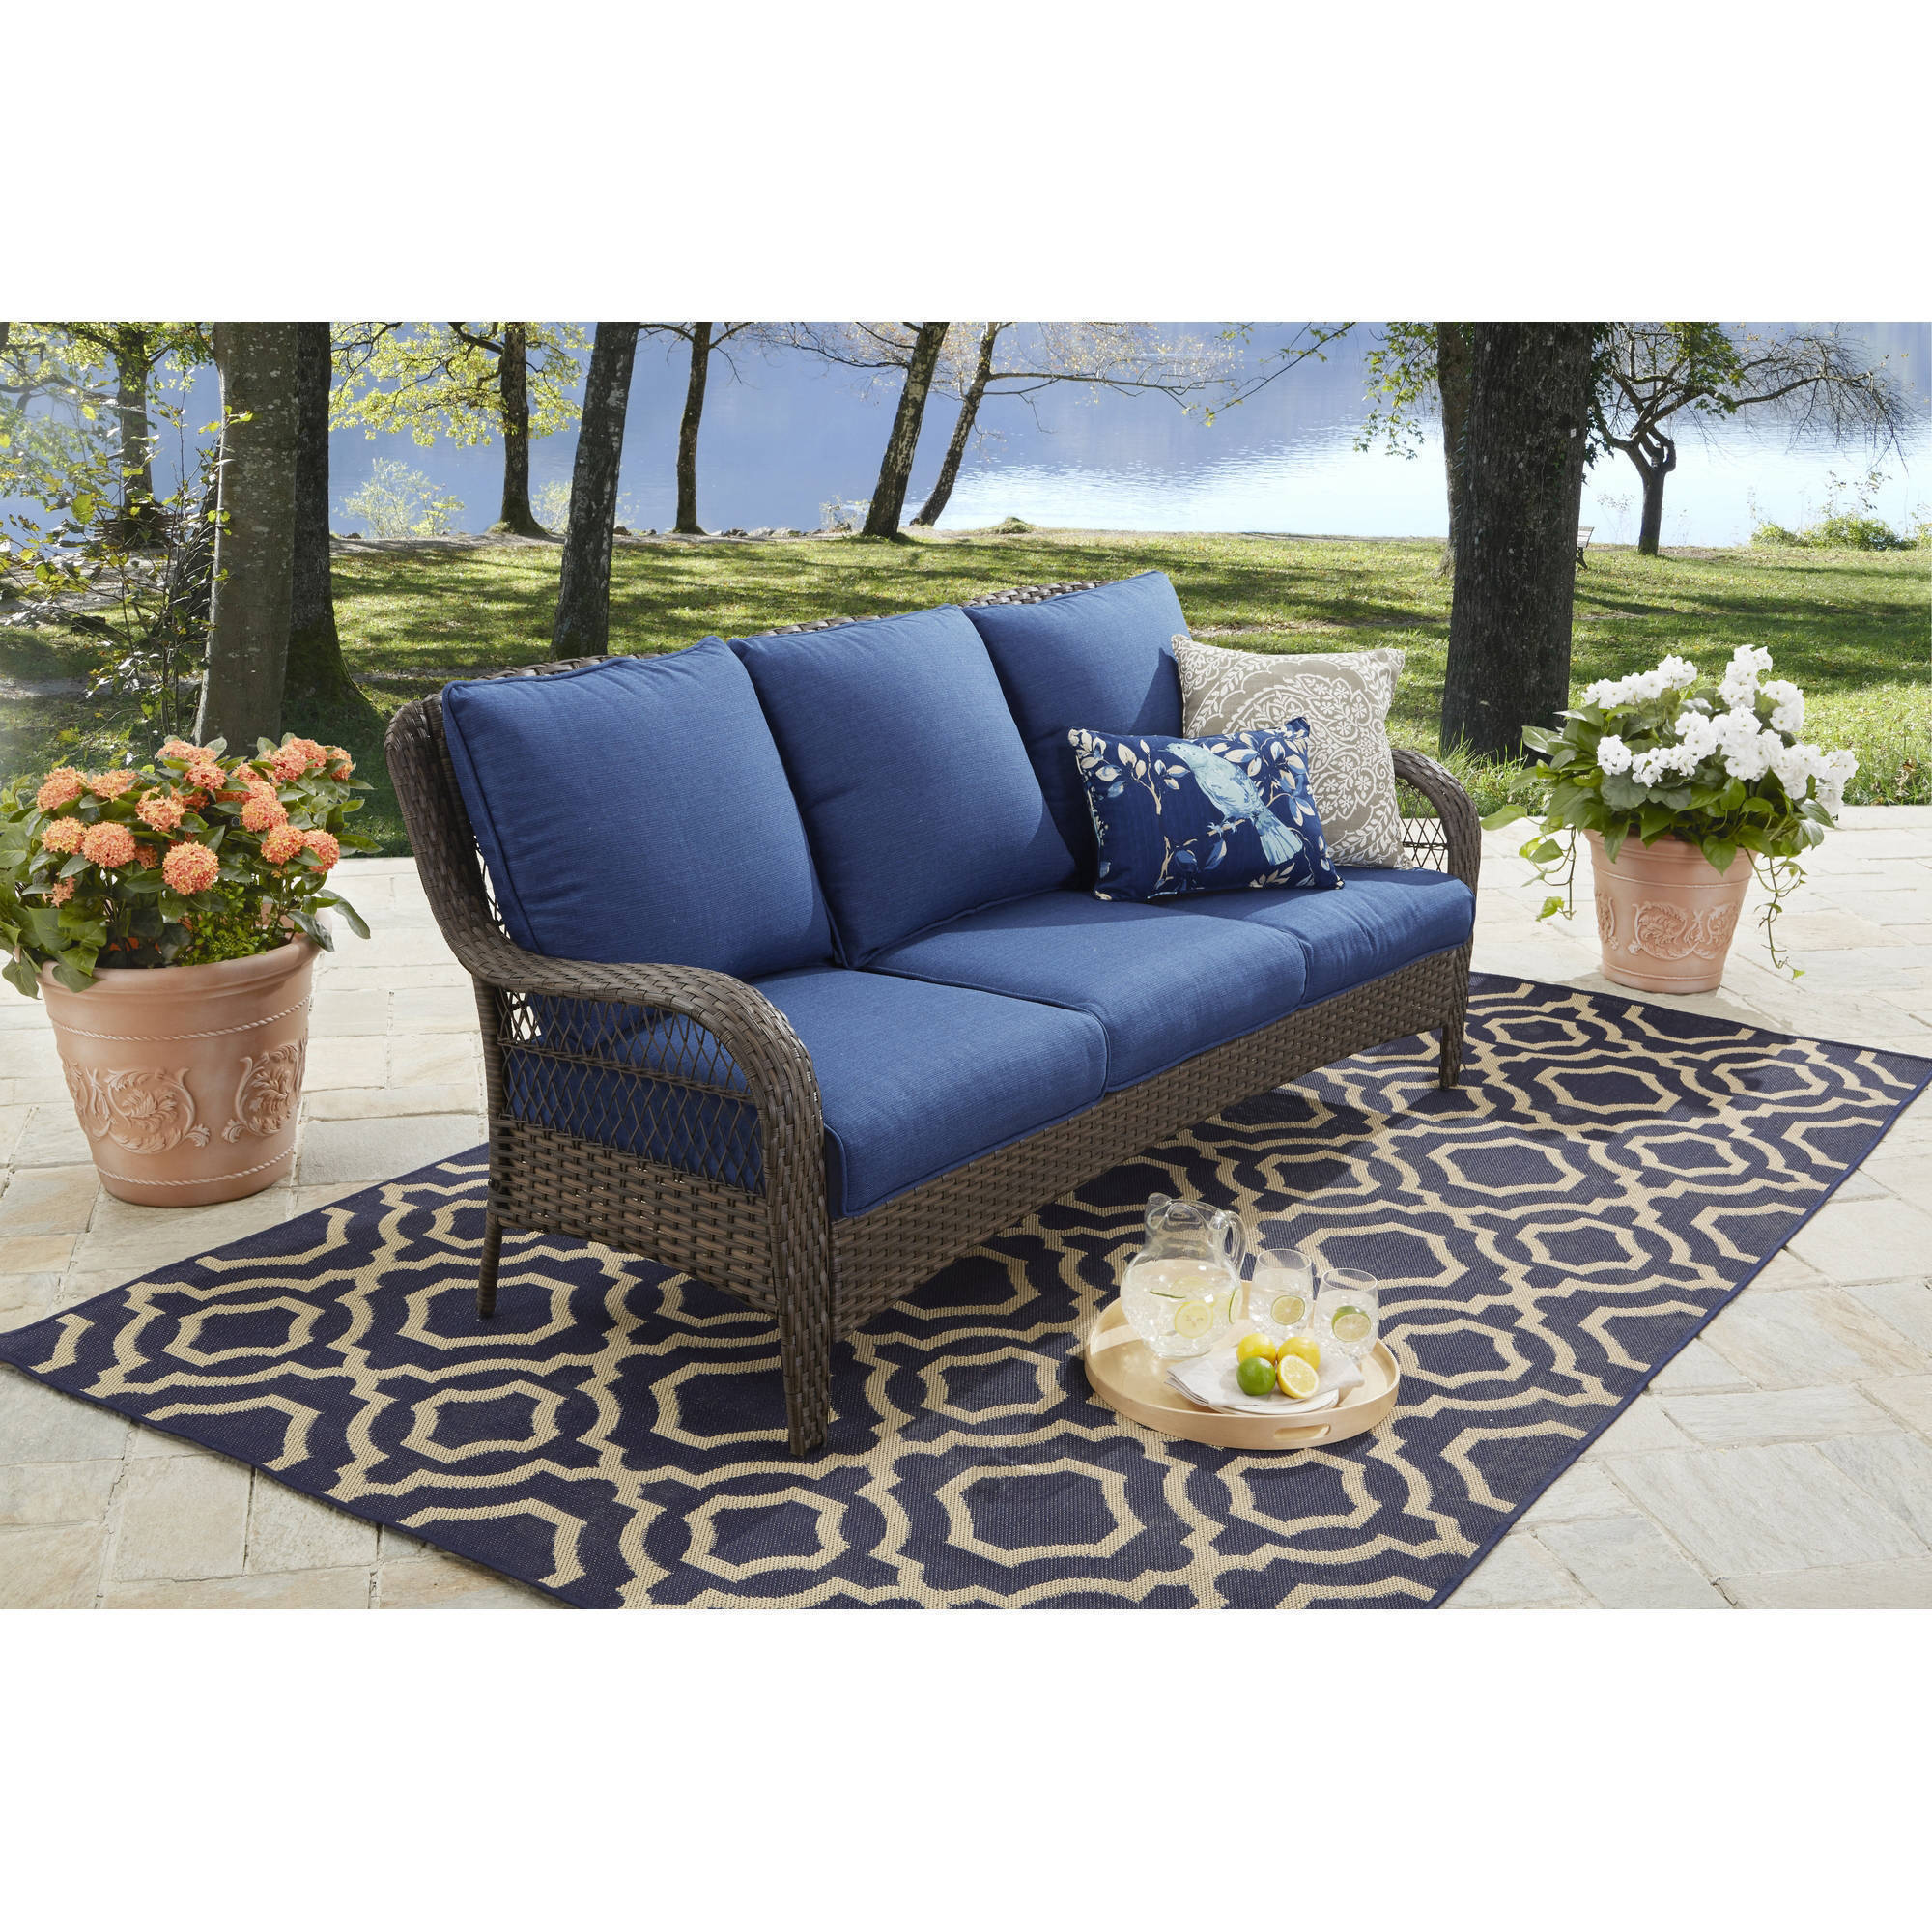 Better Homes and Gardens Colebrook Outdoor sofa, seats 3 Blue